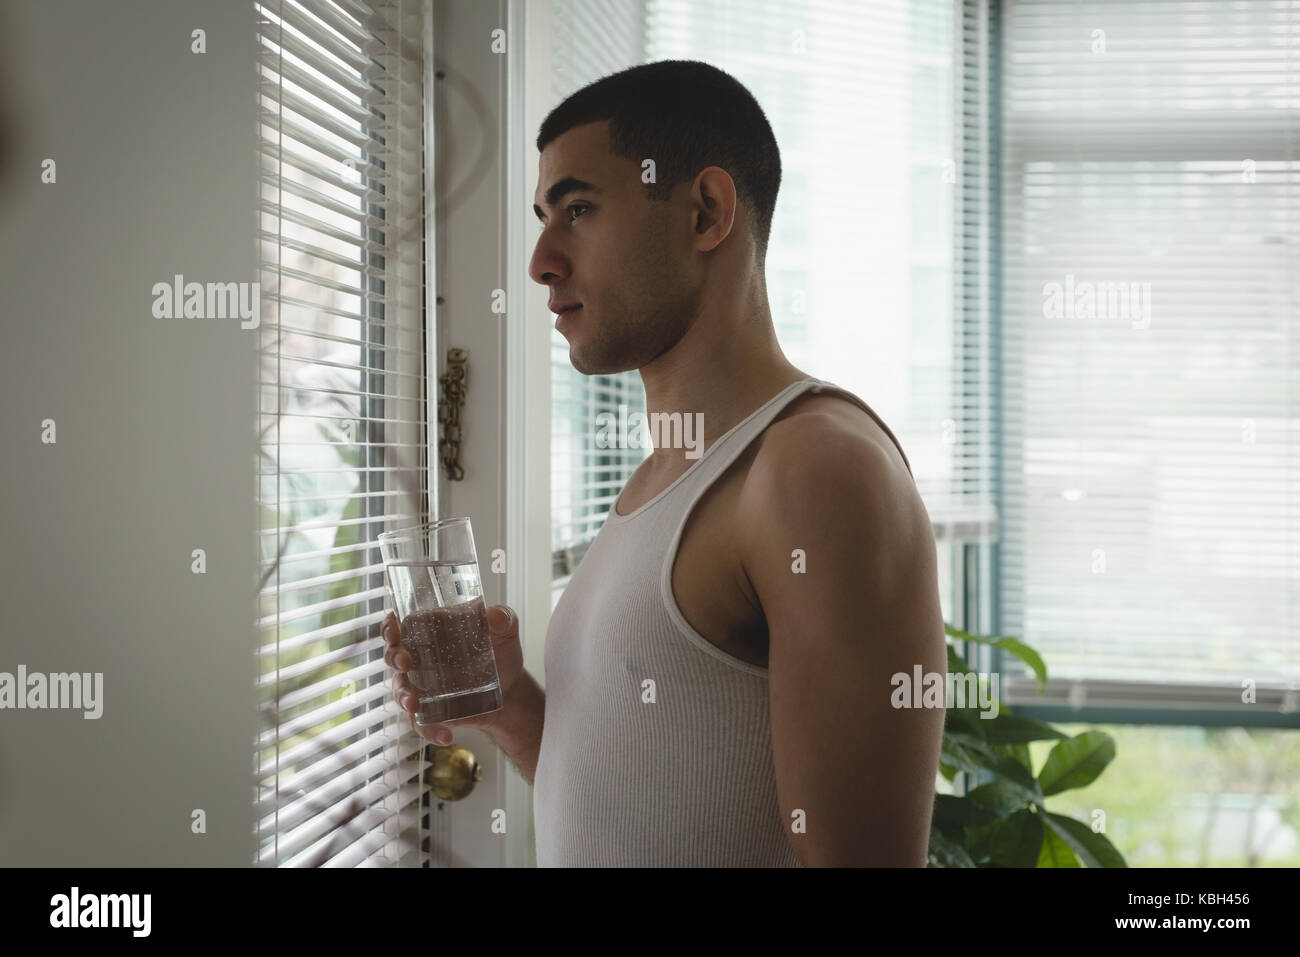 Thoughtful man looking through window blinds at home - Stock Image